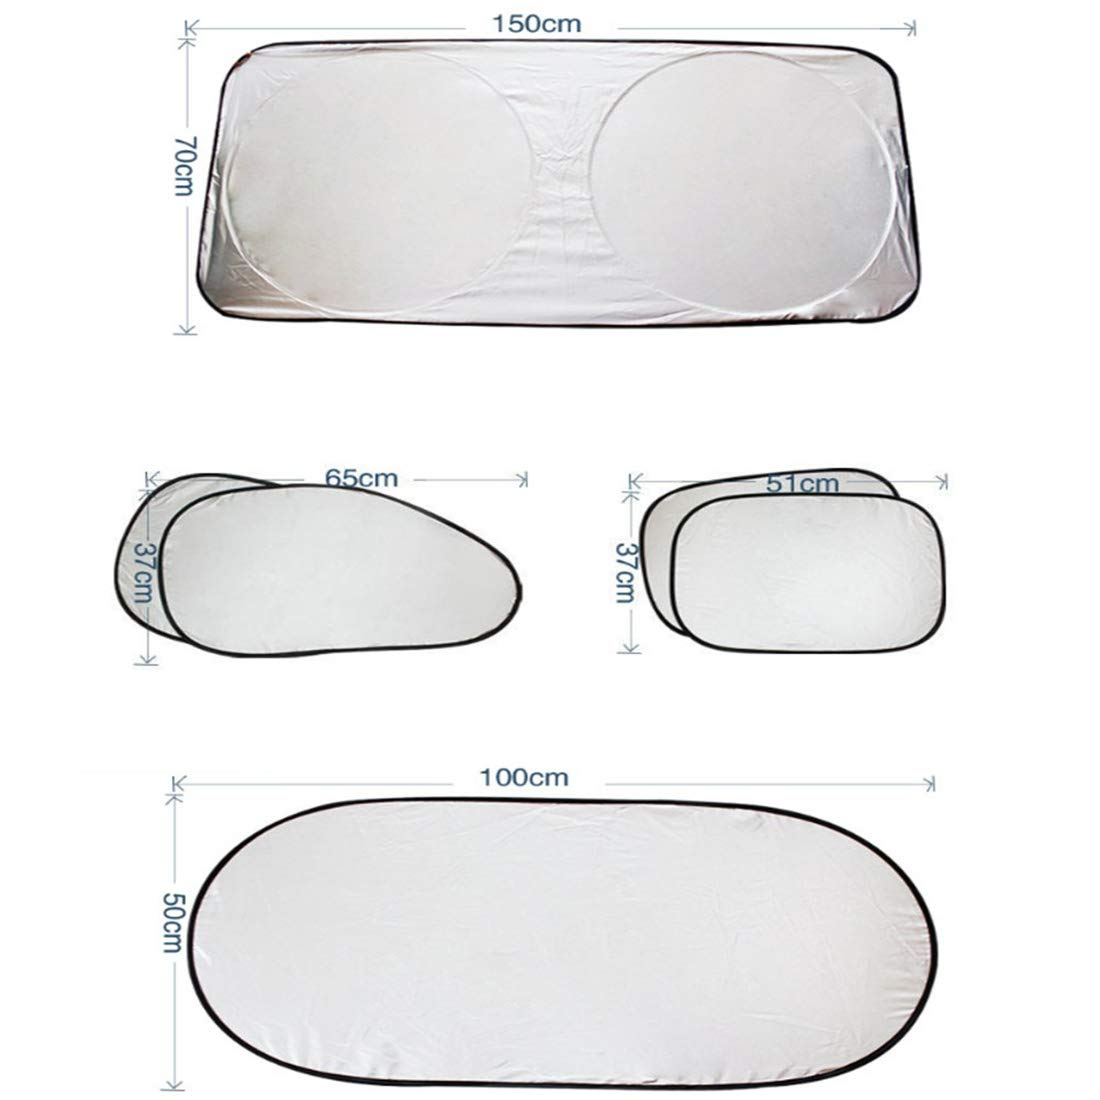 BOEHNER Car Sun Shade Windscreen SunShade Car Front Windshield Shades Sun Reflector Block UV Ray Keep Your Vehicle Cooler Flexible Size for SUV Van Truck Front Window Blind Large Silver 150 * 70